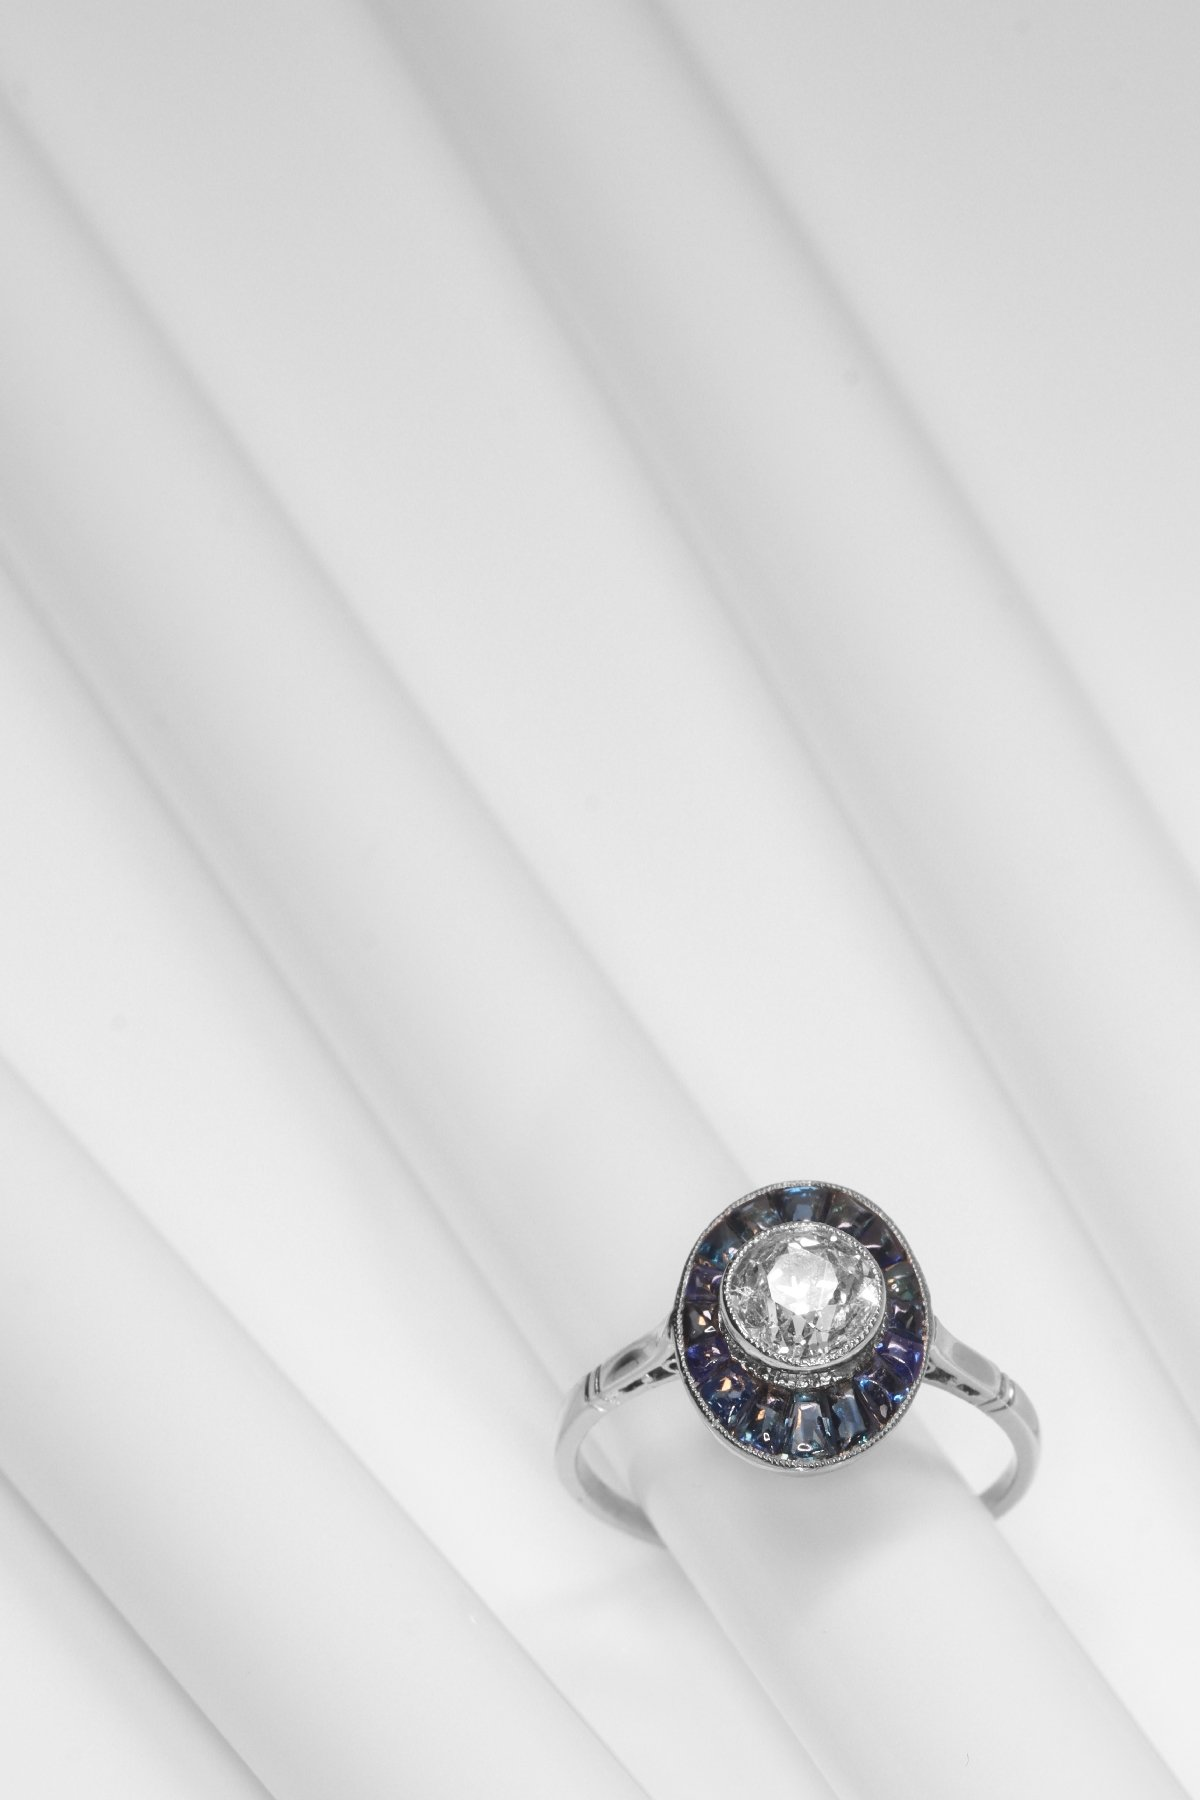 Click the picture to get to see this Vintage Art Deco platinum diamond sapphire engagement ring.